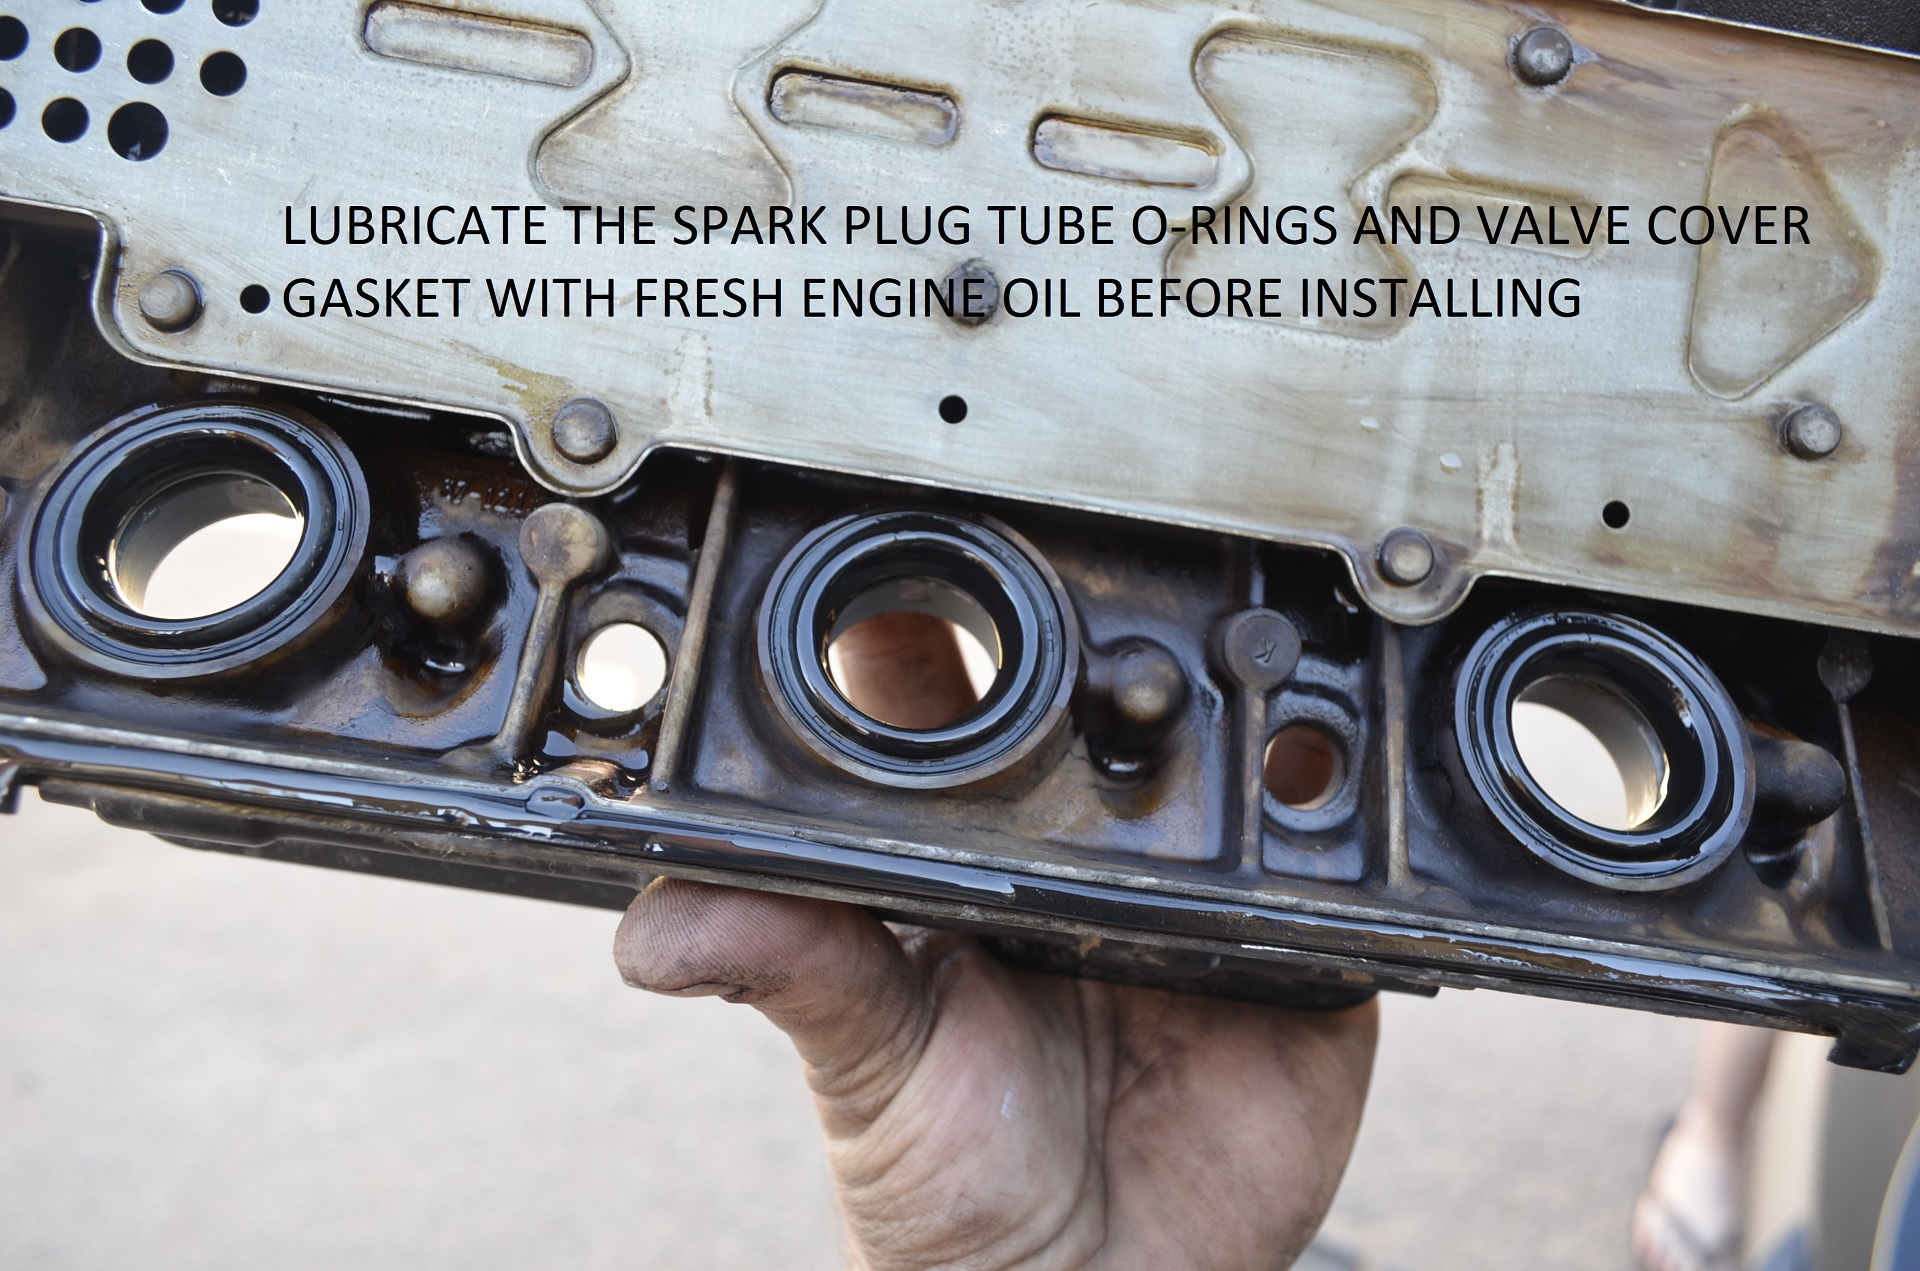 Proceed to lubricate the Spark Plug tube O-Rings and Valve Cover Gasket  with fresh engine oil, Then re-install the valve covers! GOOD LUCK!